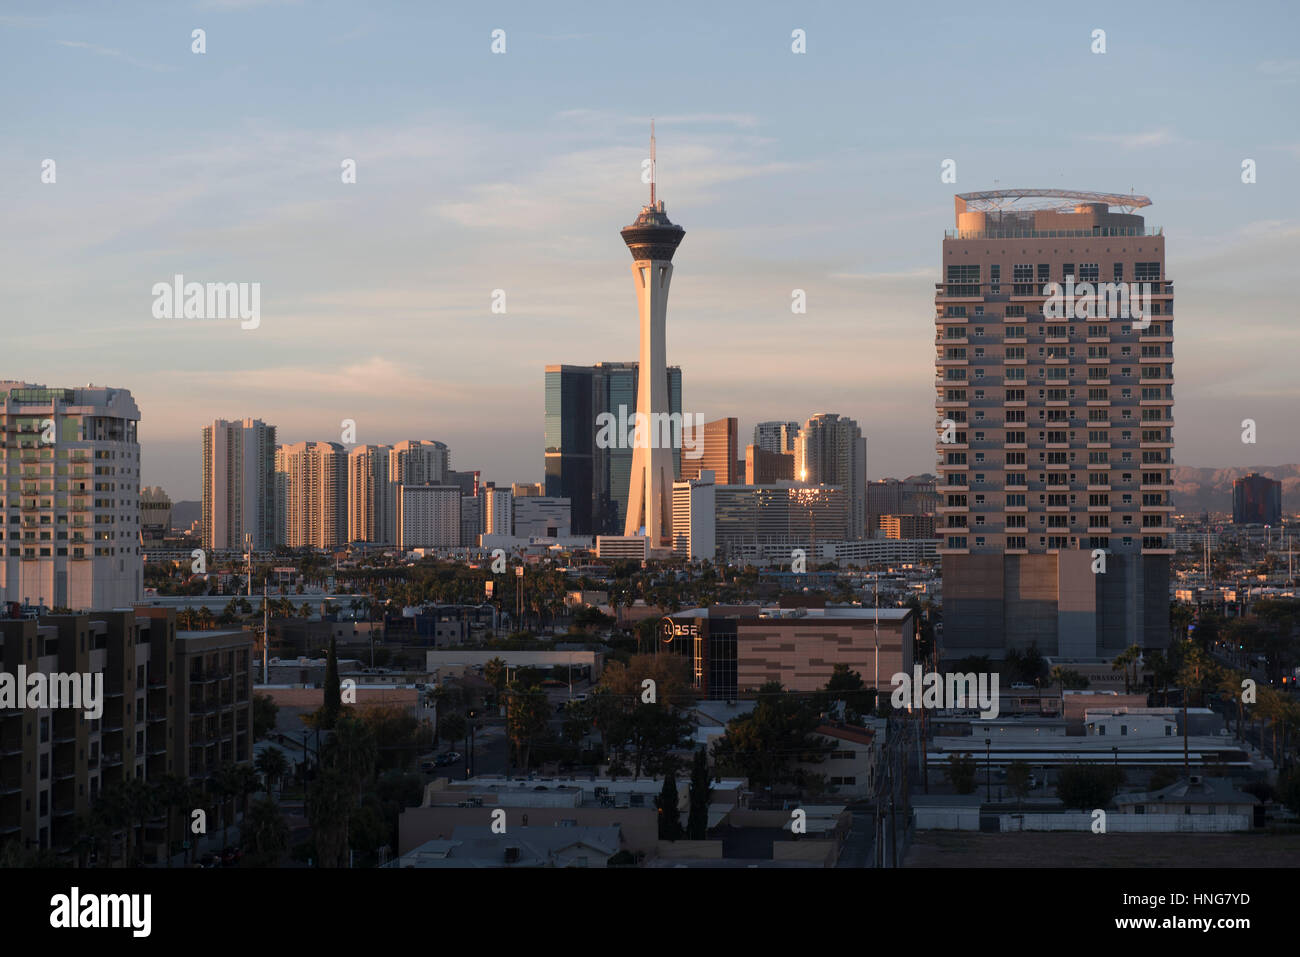 The Las Vegas skyline is seen during sunrise on Oct. 25, 2016. - Stock Image